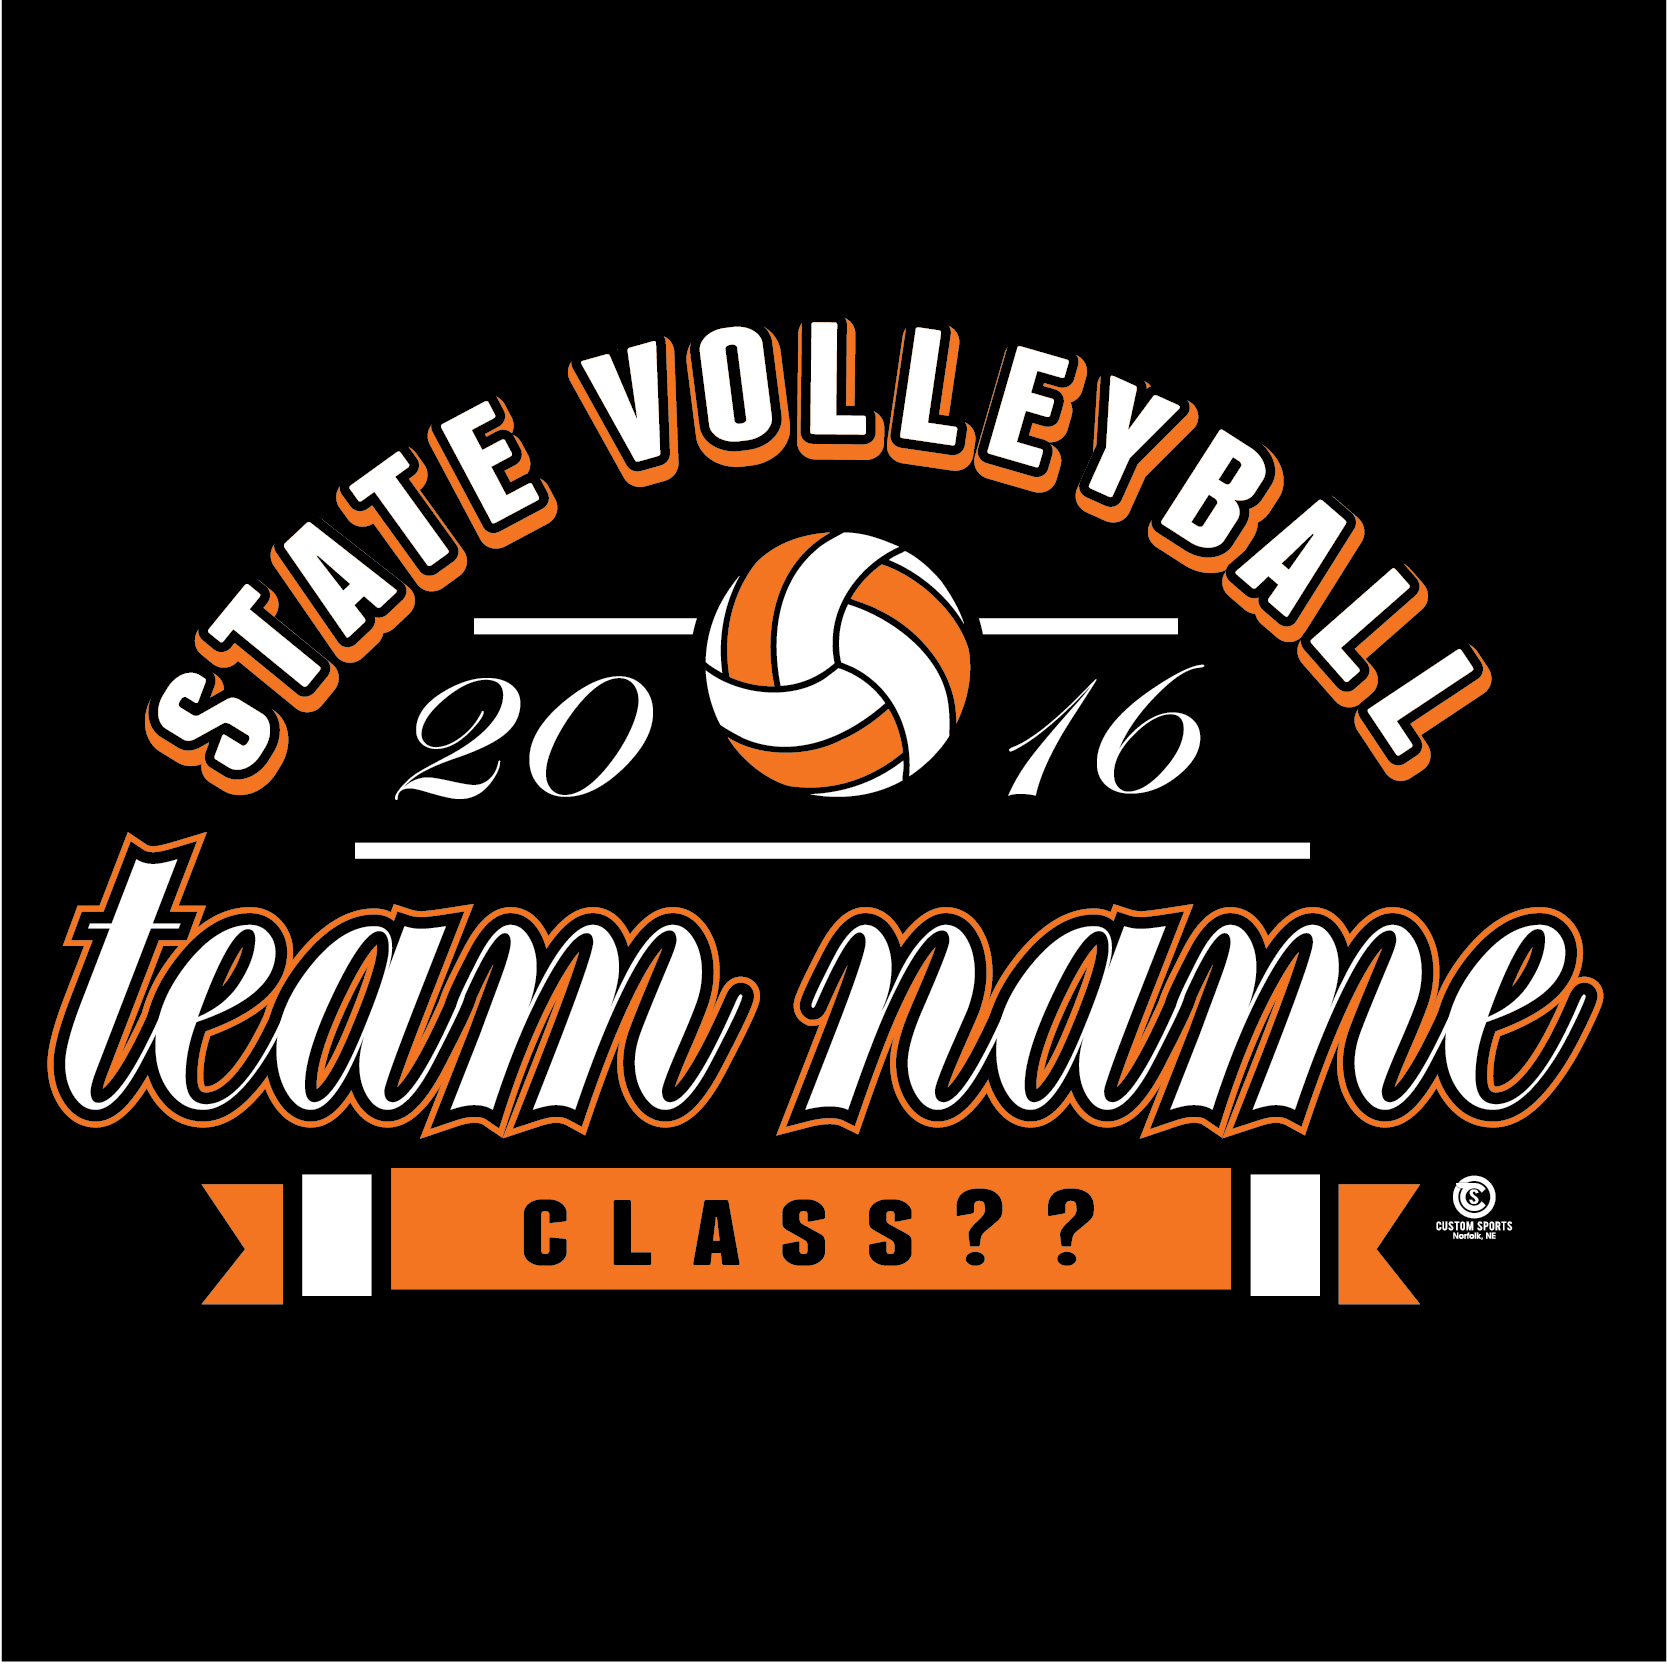 T shirt design volleyball - State Volleyball Web 12